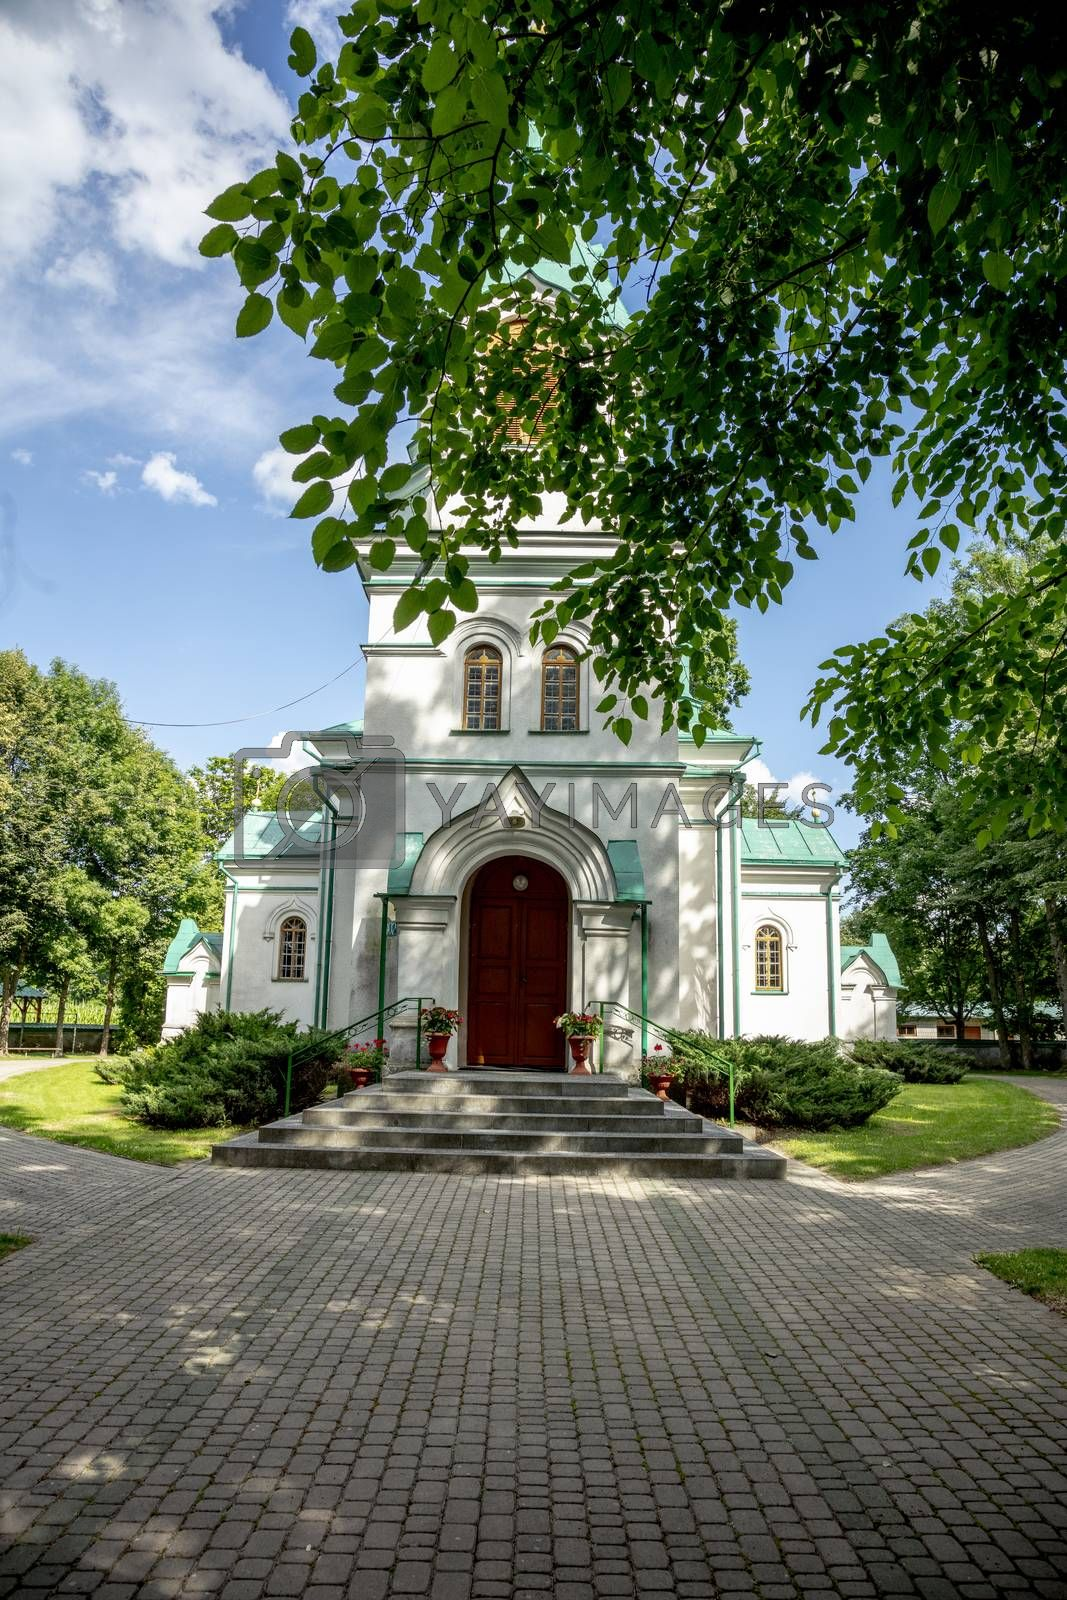 Orthodox church of Saint Kosmy and Damian in the village of Ryboly in the Podlasie region of Poland